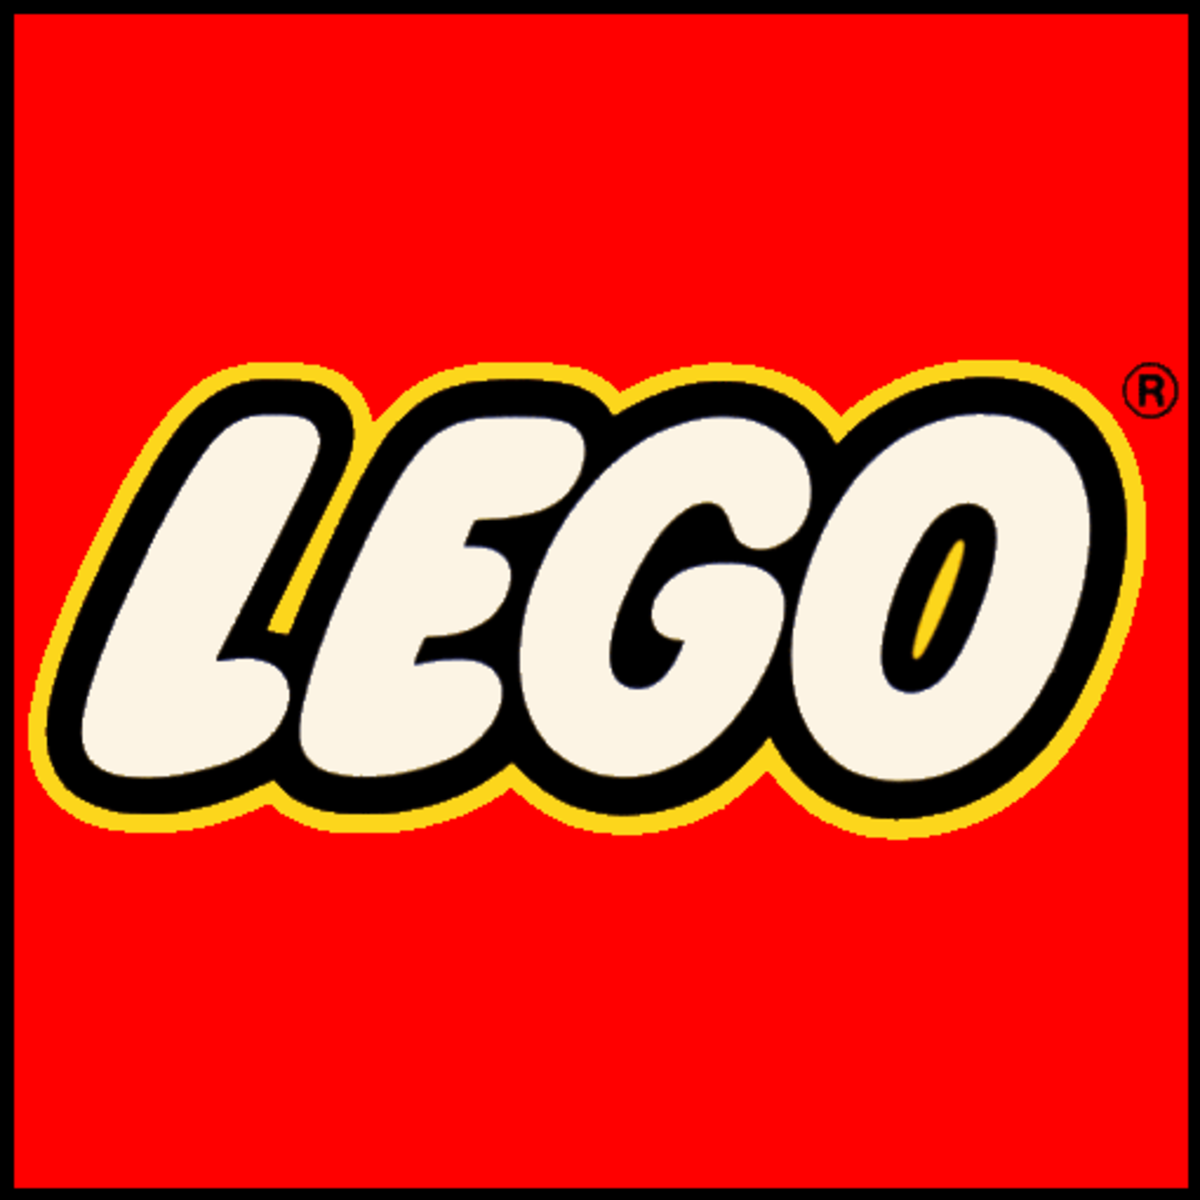 Current Modern LEGO logo